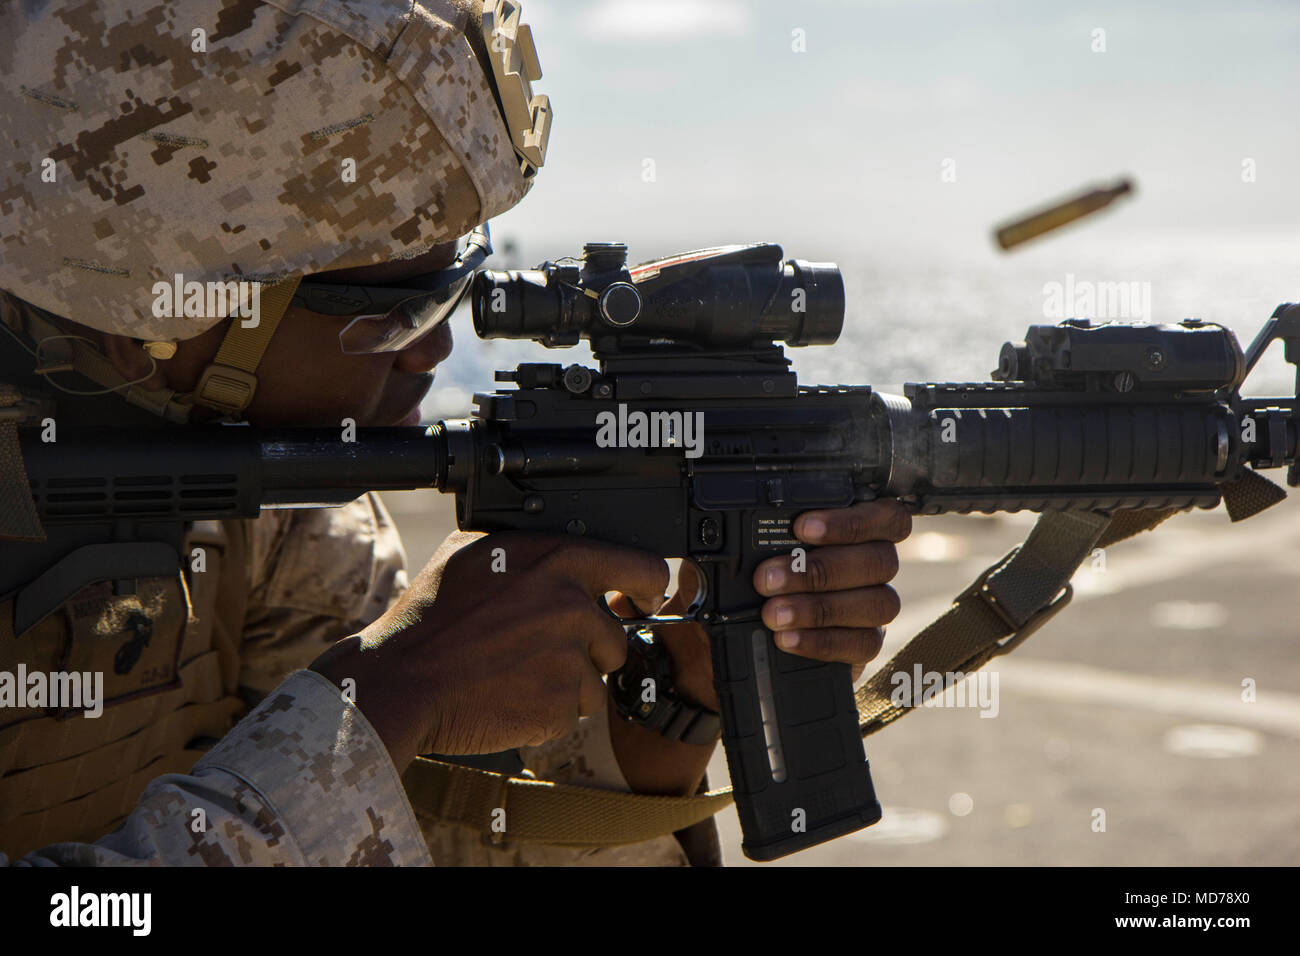 30 Carbine Stock Photos & 30 Carbine Stock Images - Alamy